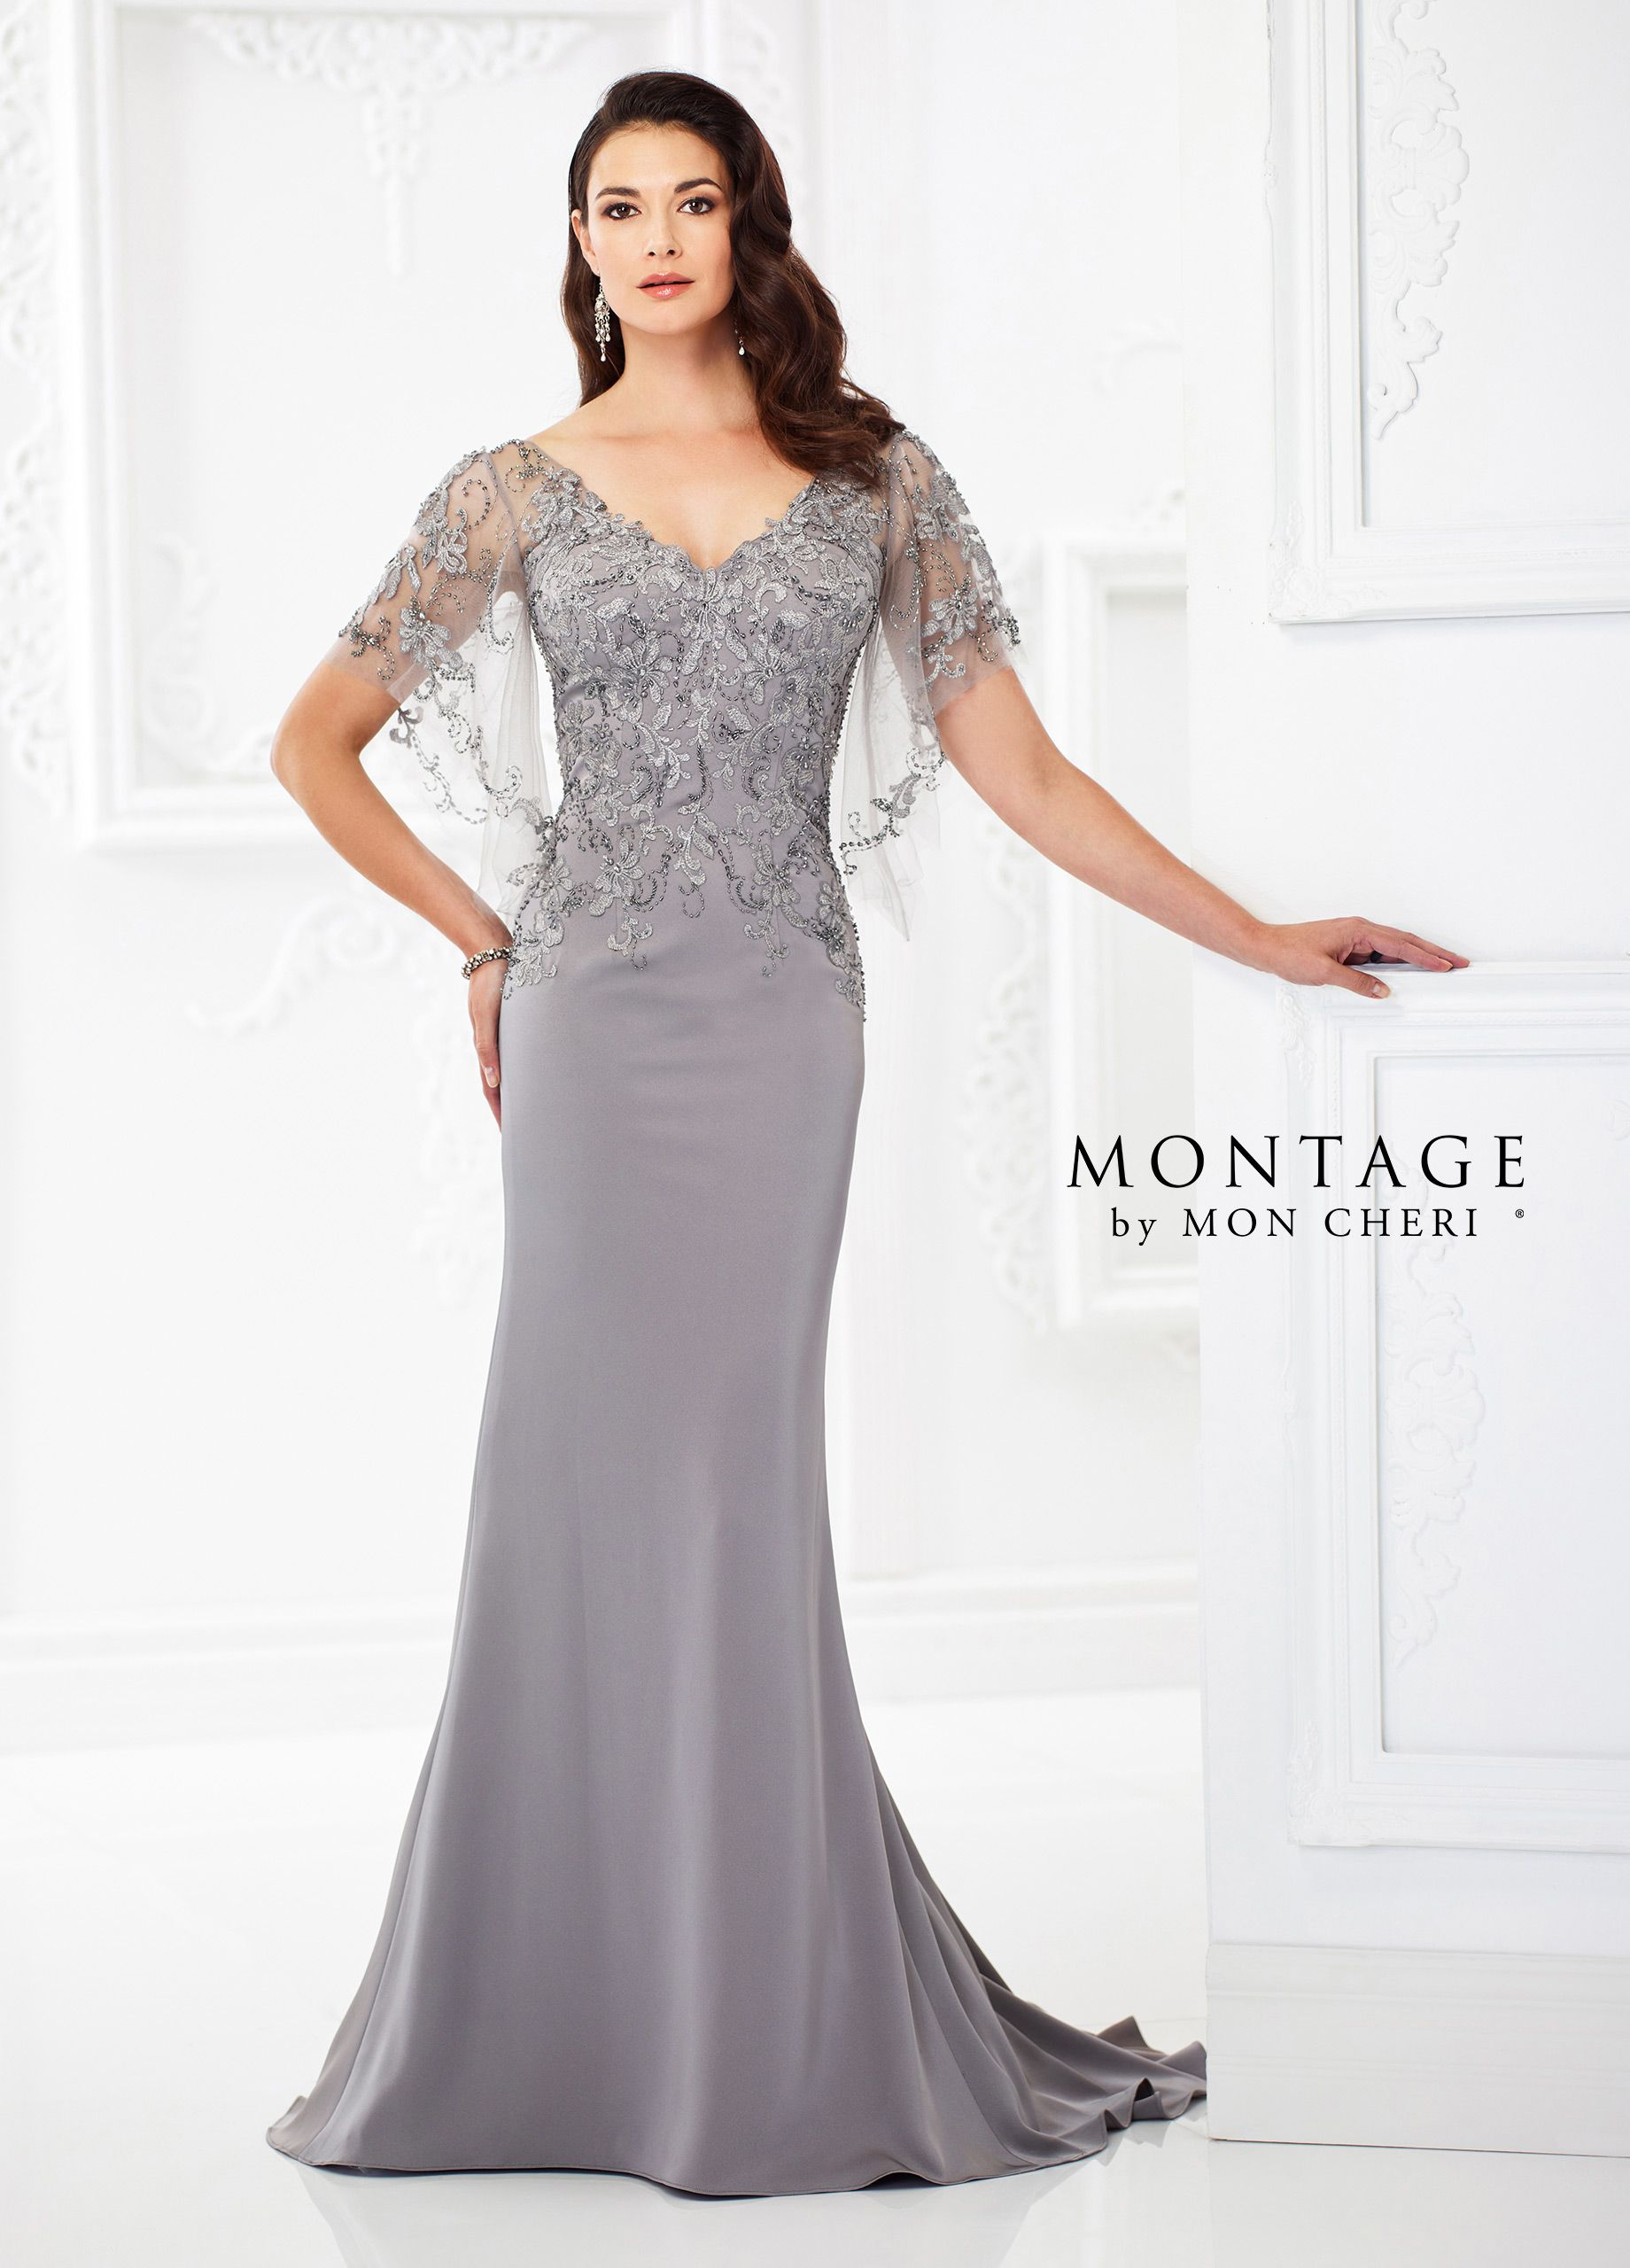 Mother Of The Bride Dresses By Montage Mon Cheri Special Occasion Formal Wear For The Modern Mother Mothers Dresses Mother Of The Bride Gown Mother Of Groom Dresses